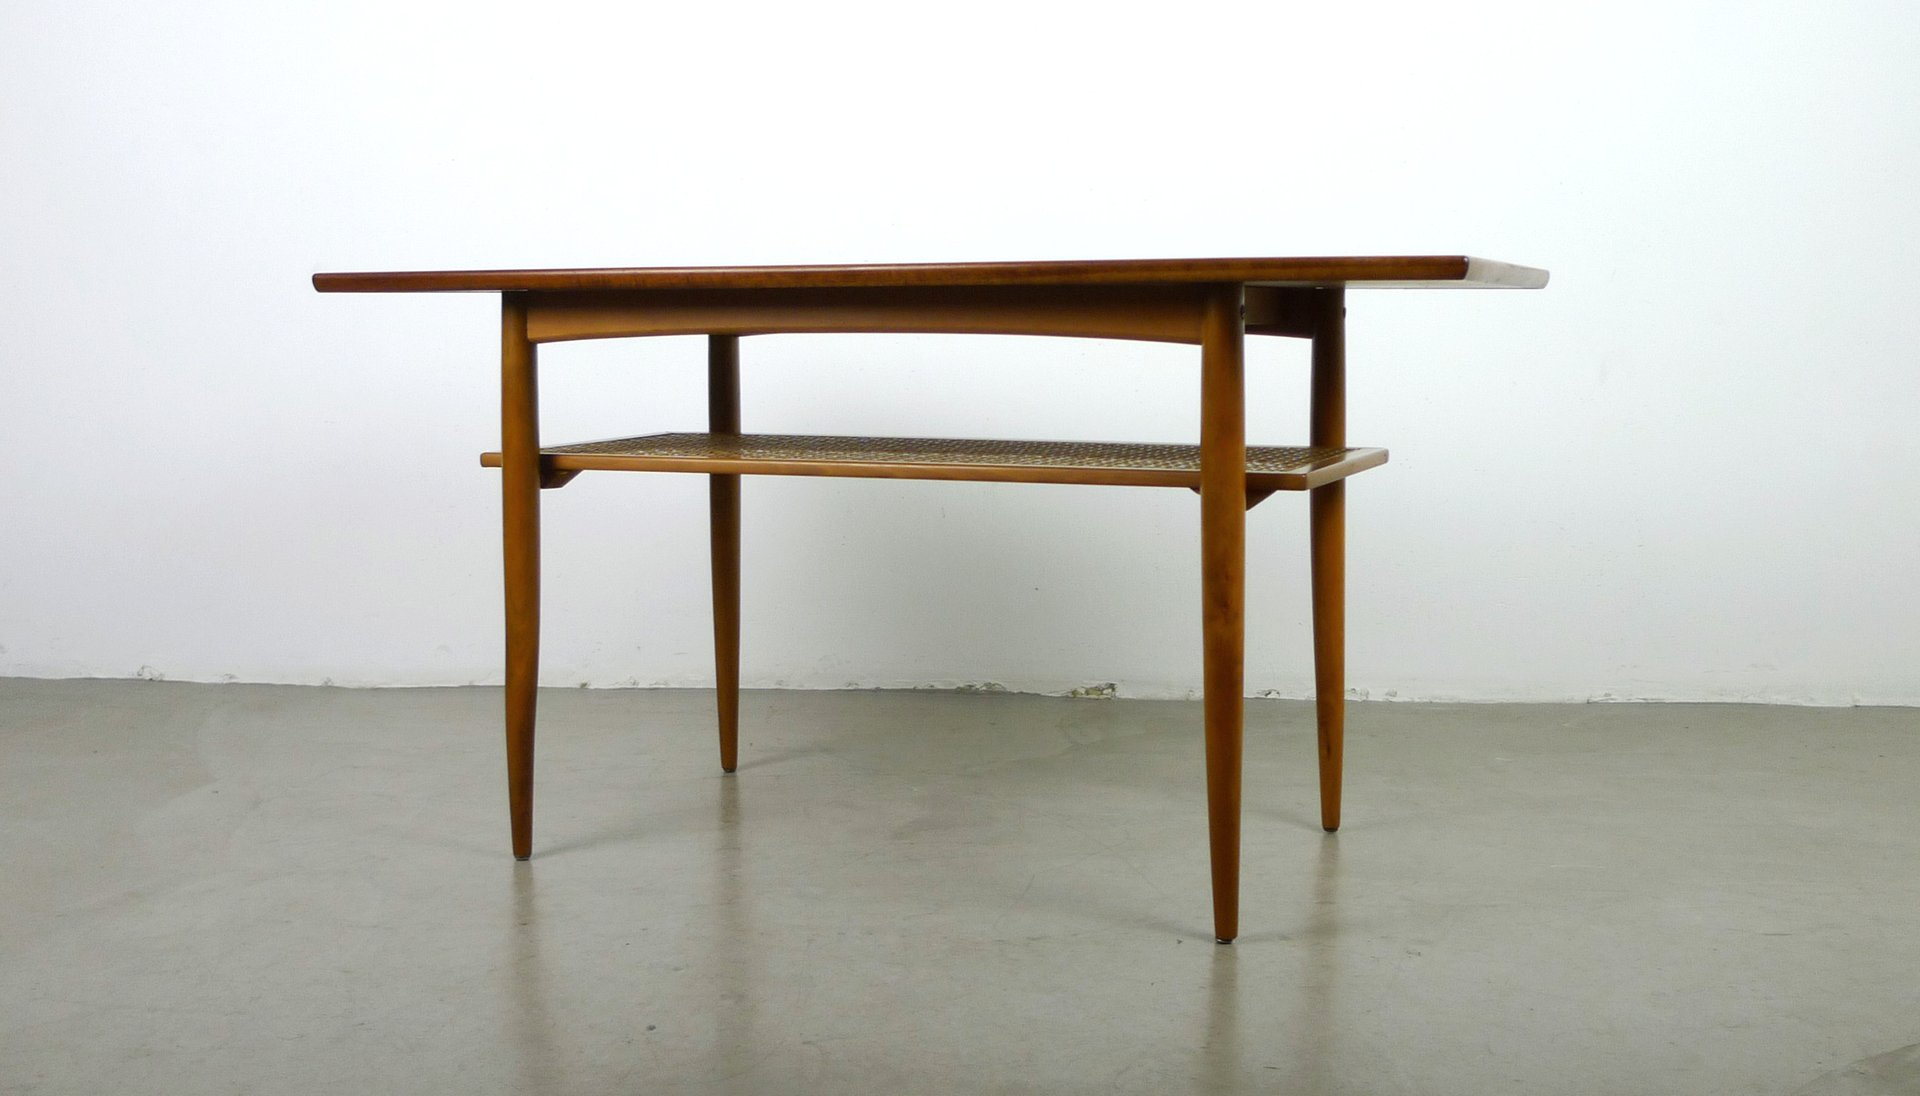 Teak Coffee Table With Shelf From Knoll 1950s For Sale At Pamono